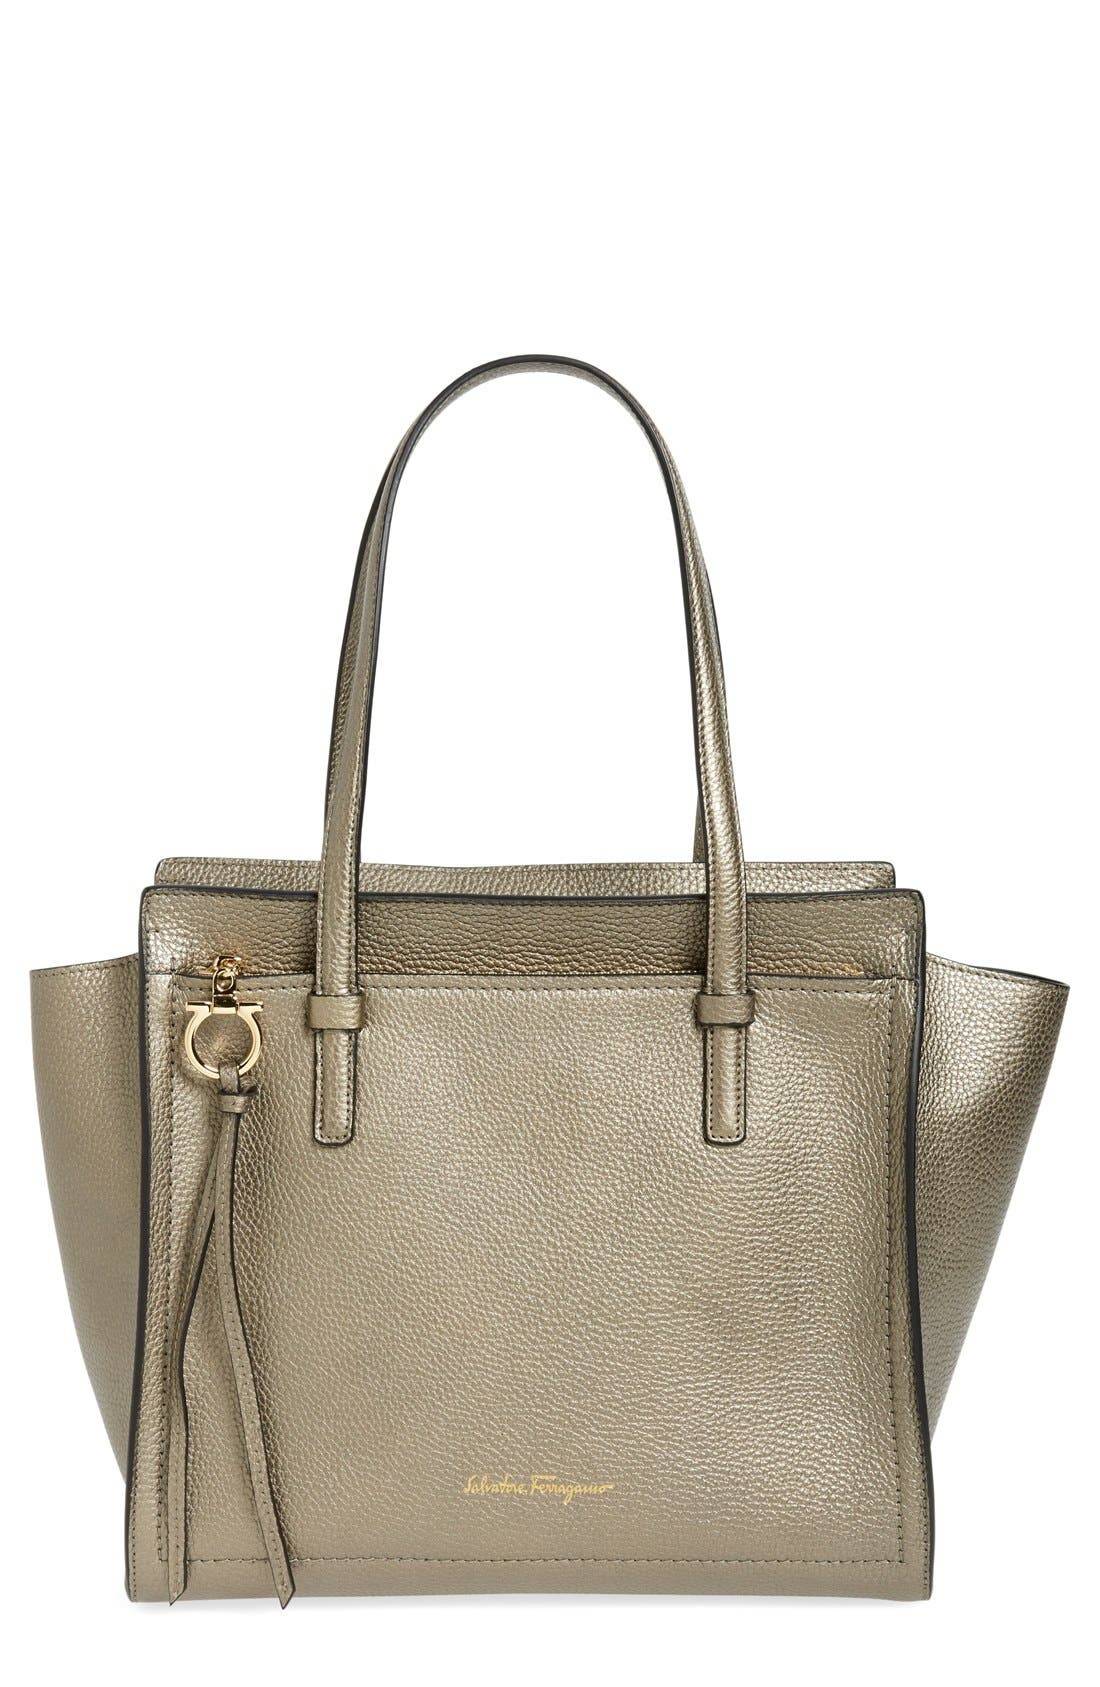 SALVATORE FERRAGAMO 'Medium Amy' Leather Tote